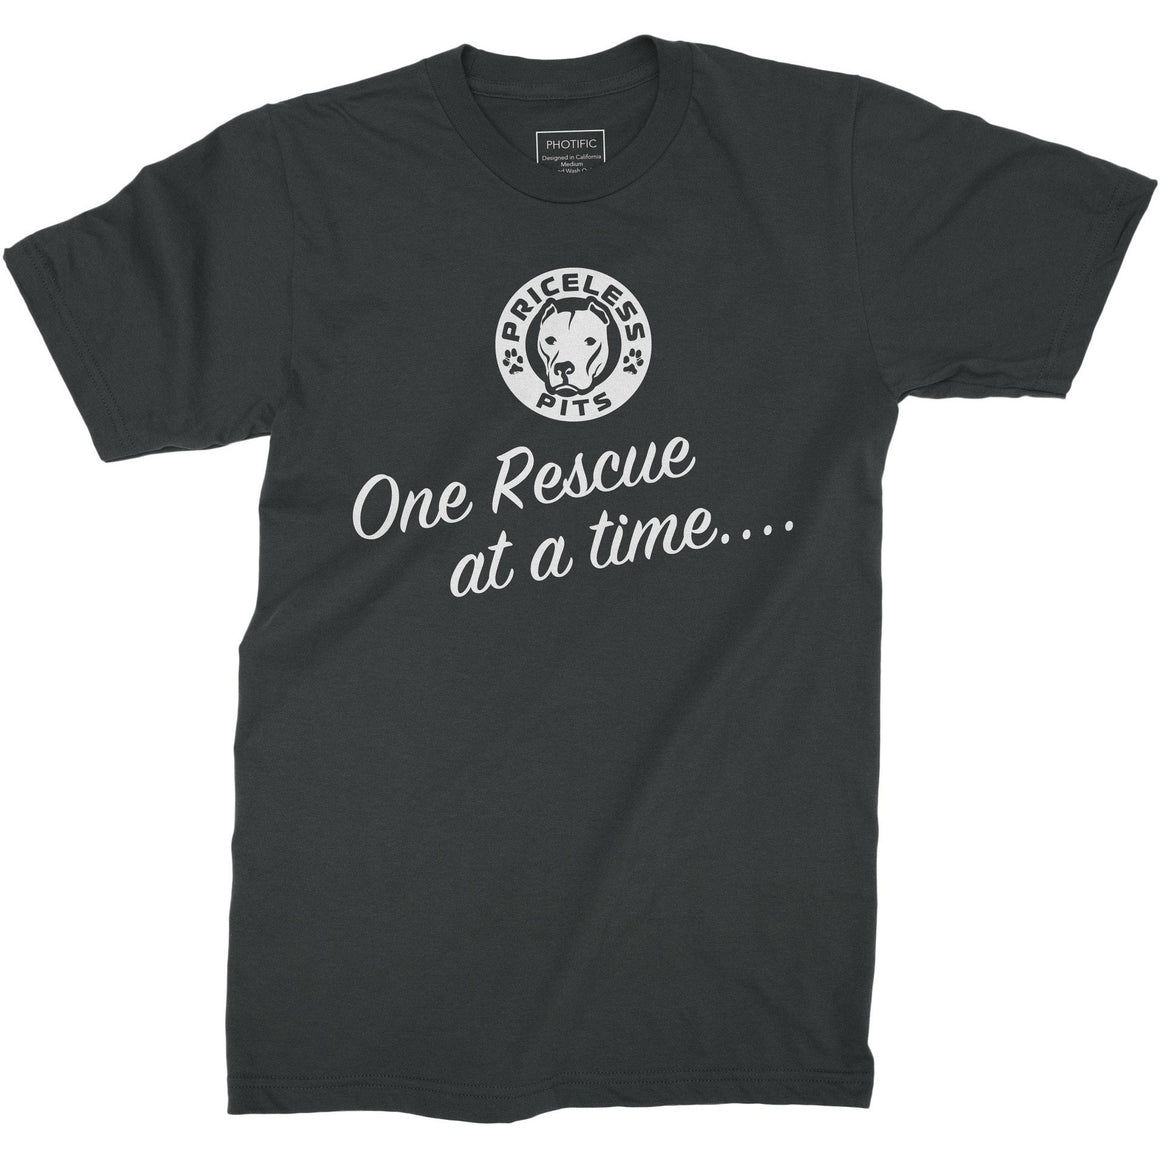 One Rescue At a Time.... Dark Gray Youth Pitbull Shirt